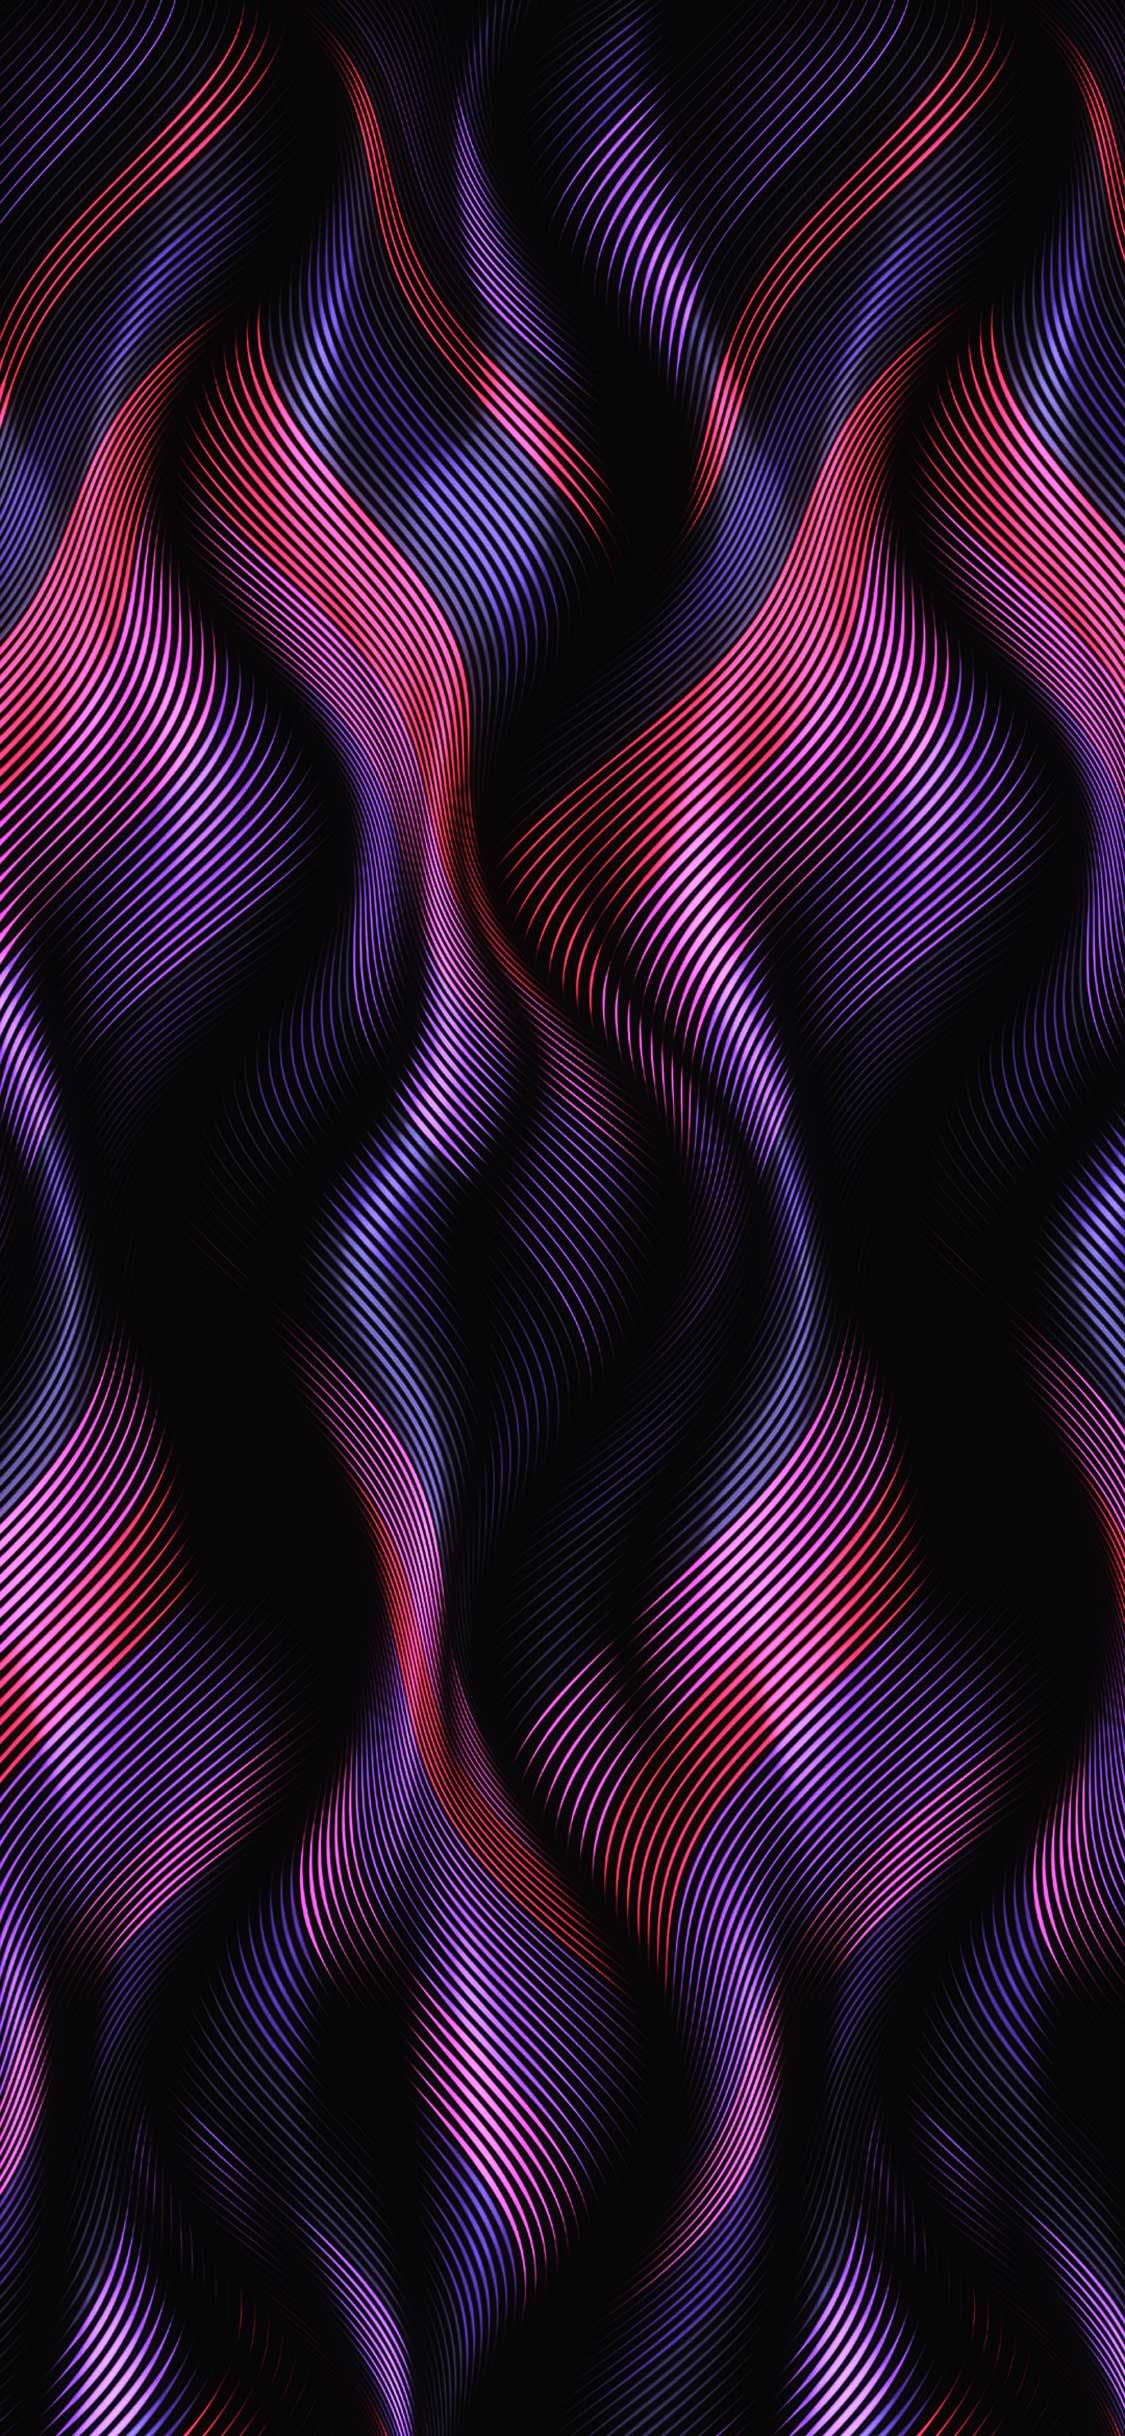 Cool Abstract Colors Iphone X Melhores Fundos Para Iphone Papel